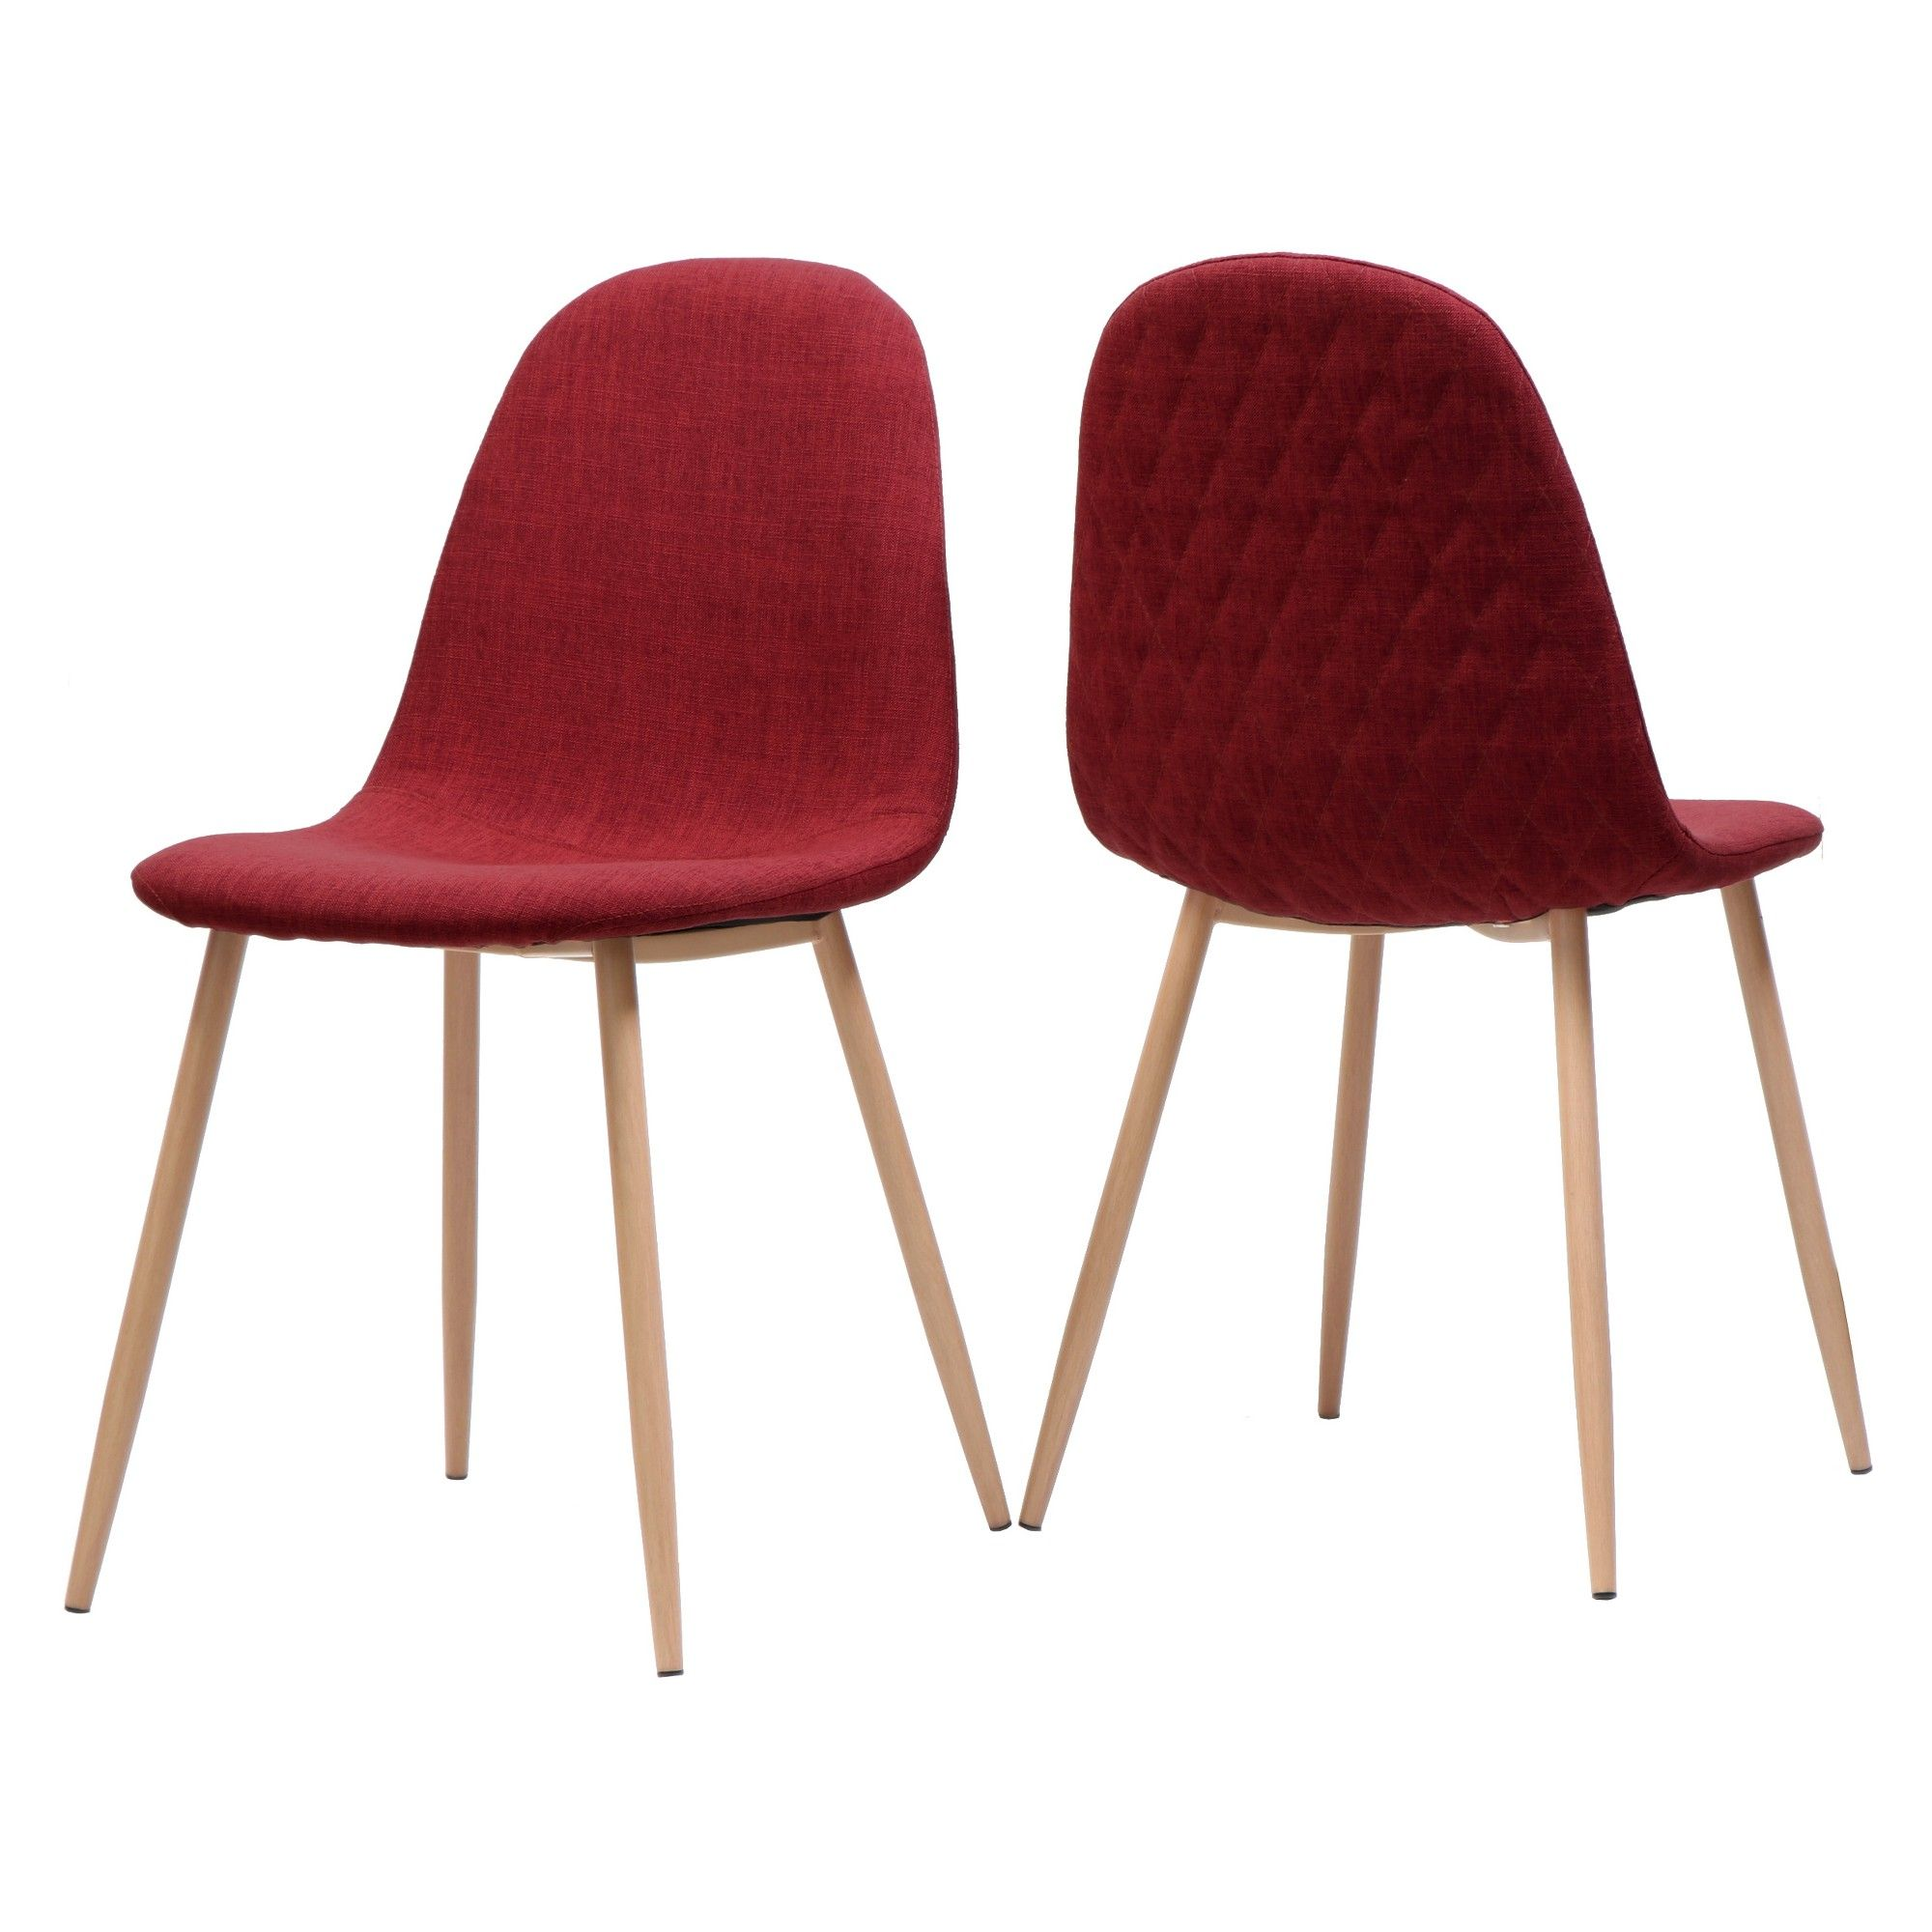 Set Of 2 Caden Mid Century Dining Chair Red Christopher Knight